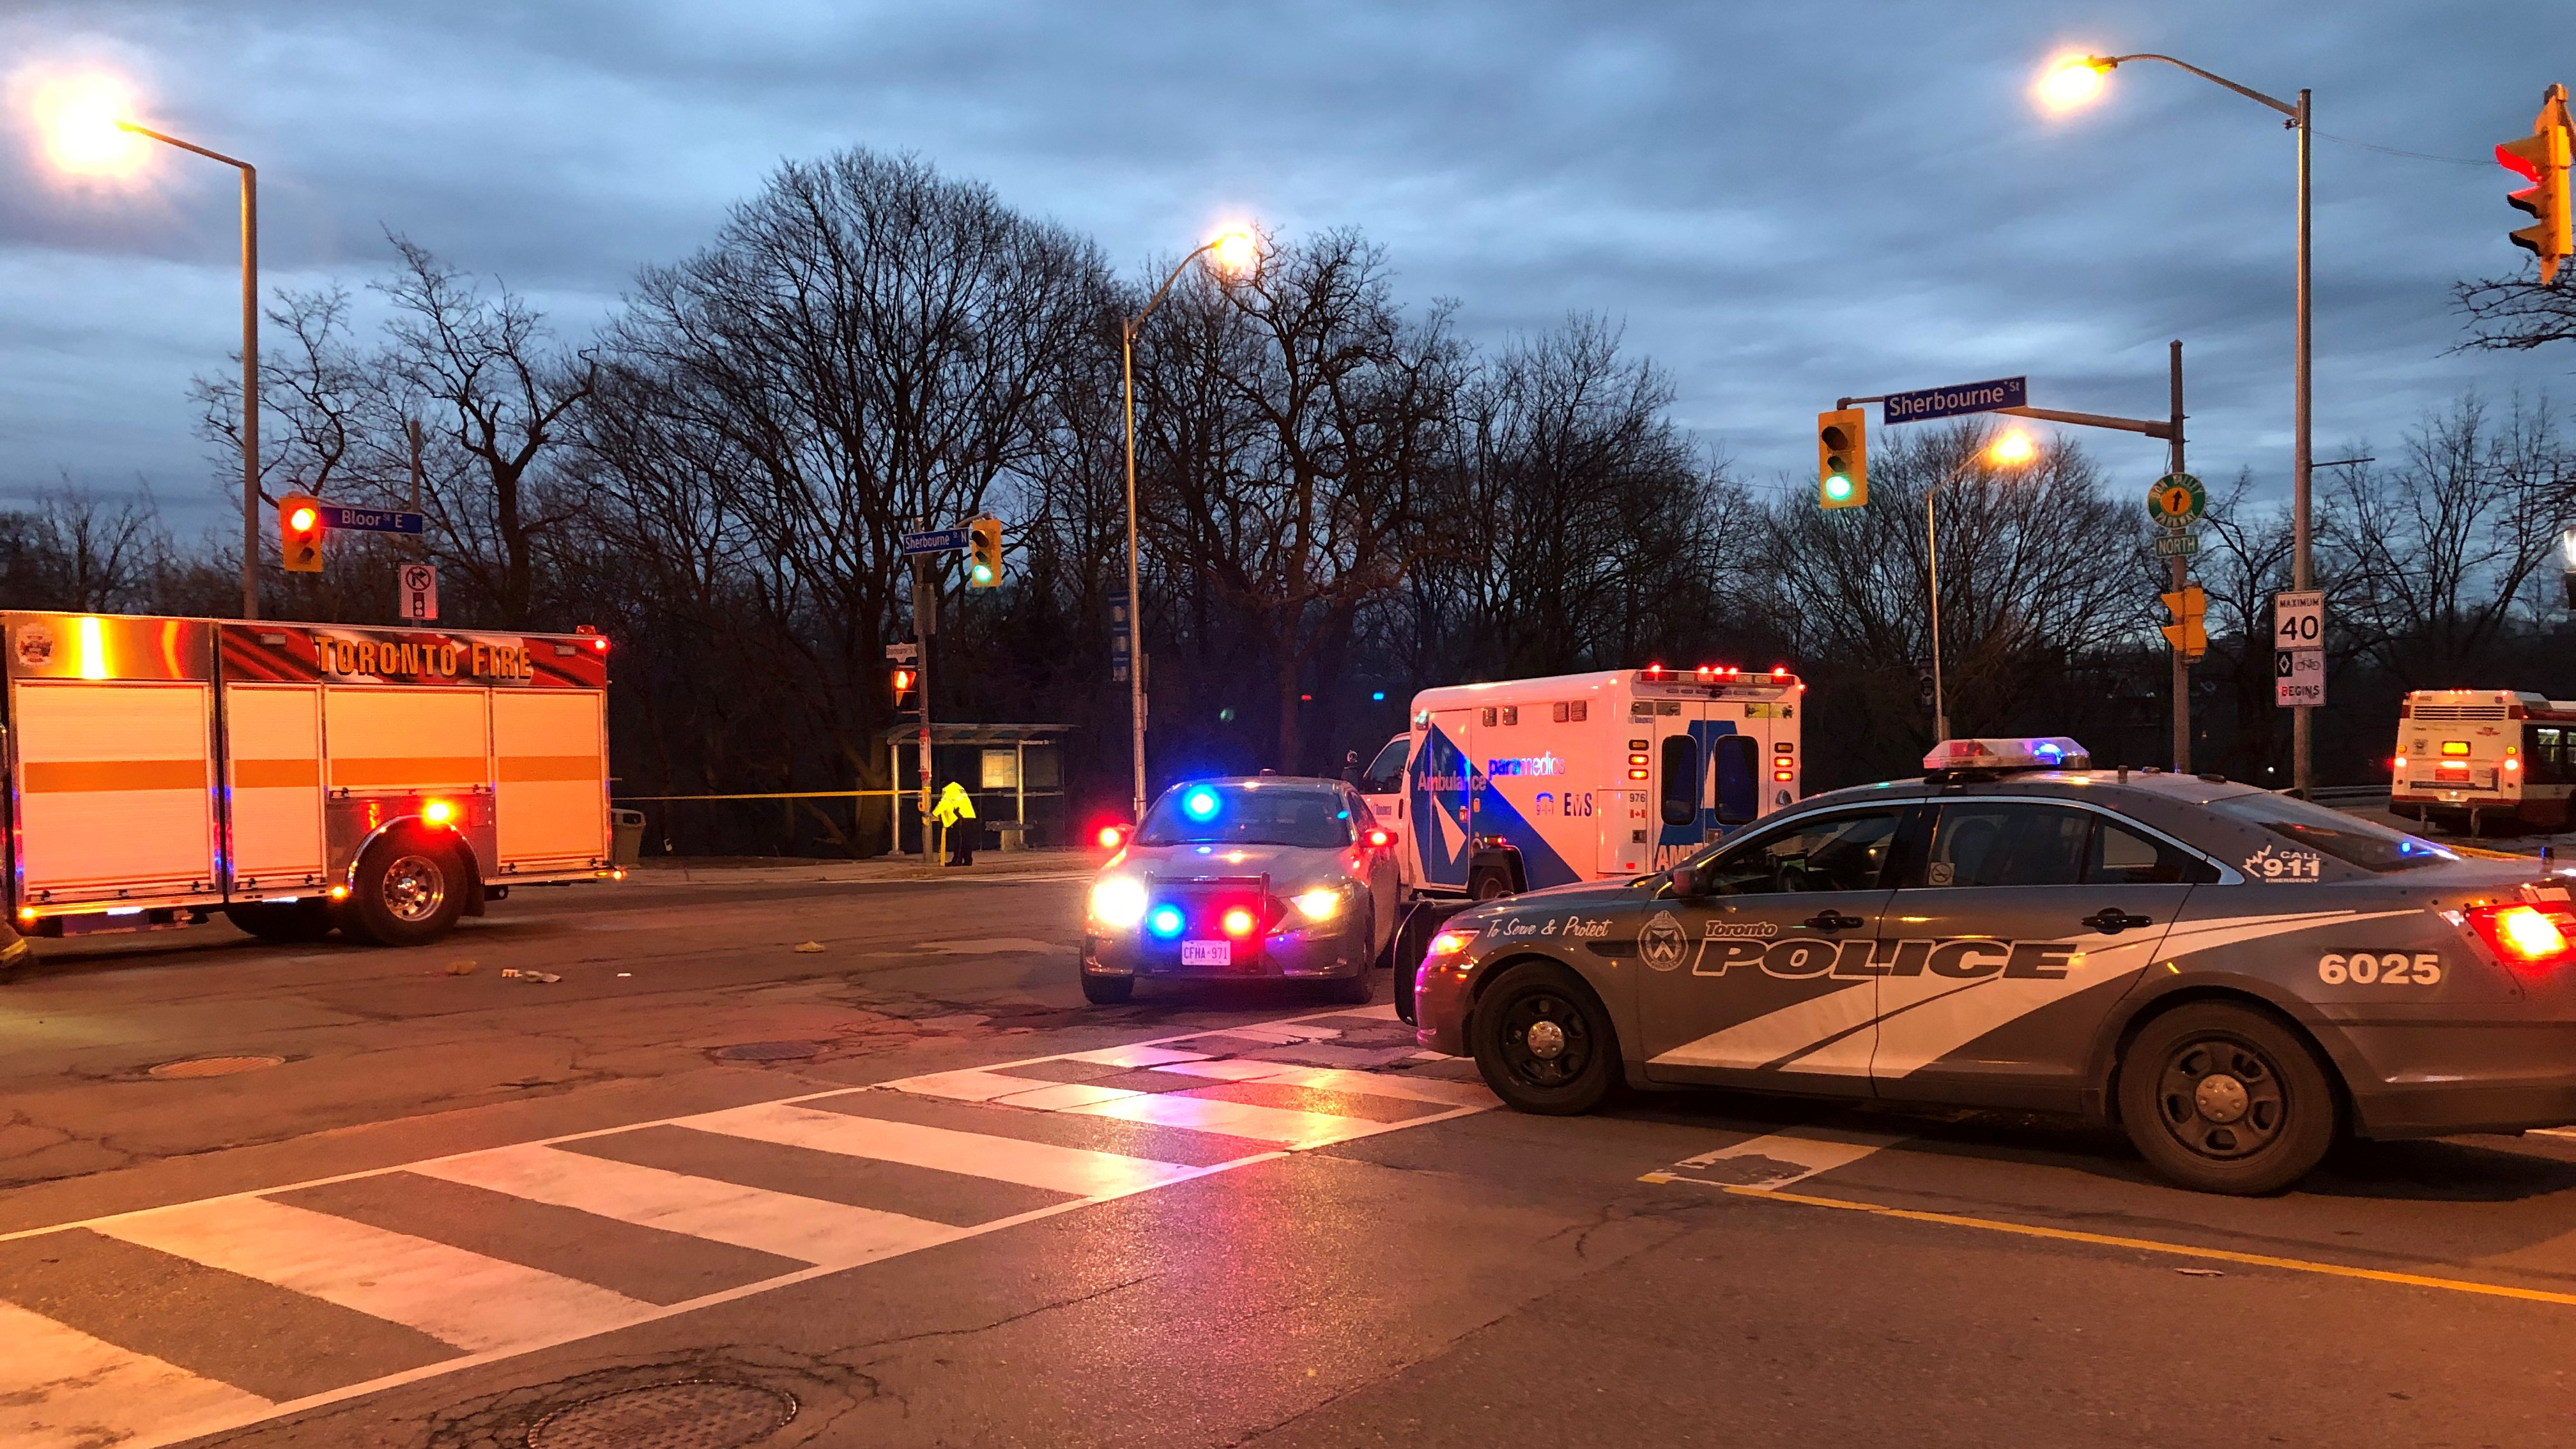 Pedestrian fatally hit by vehicle at Bloor and Sherbourne